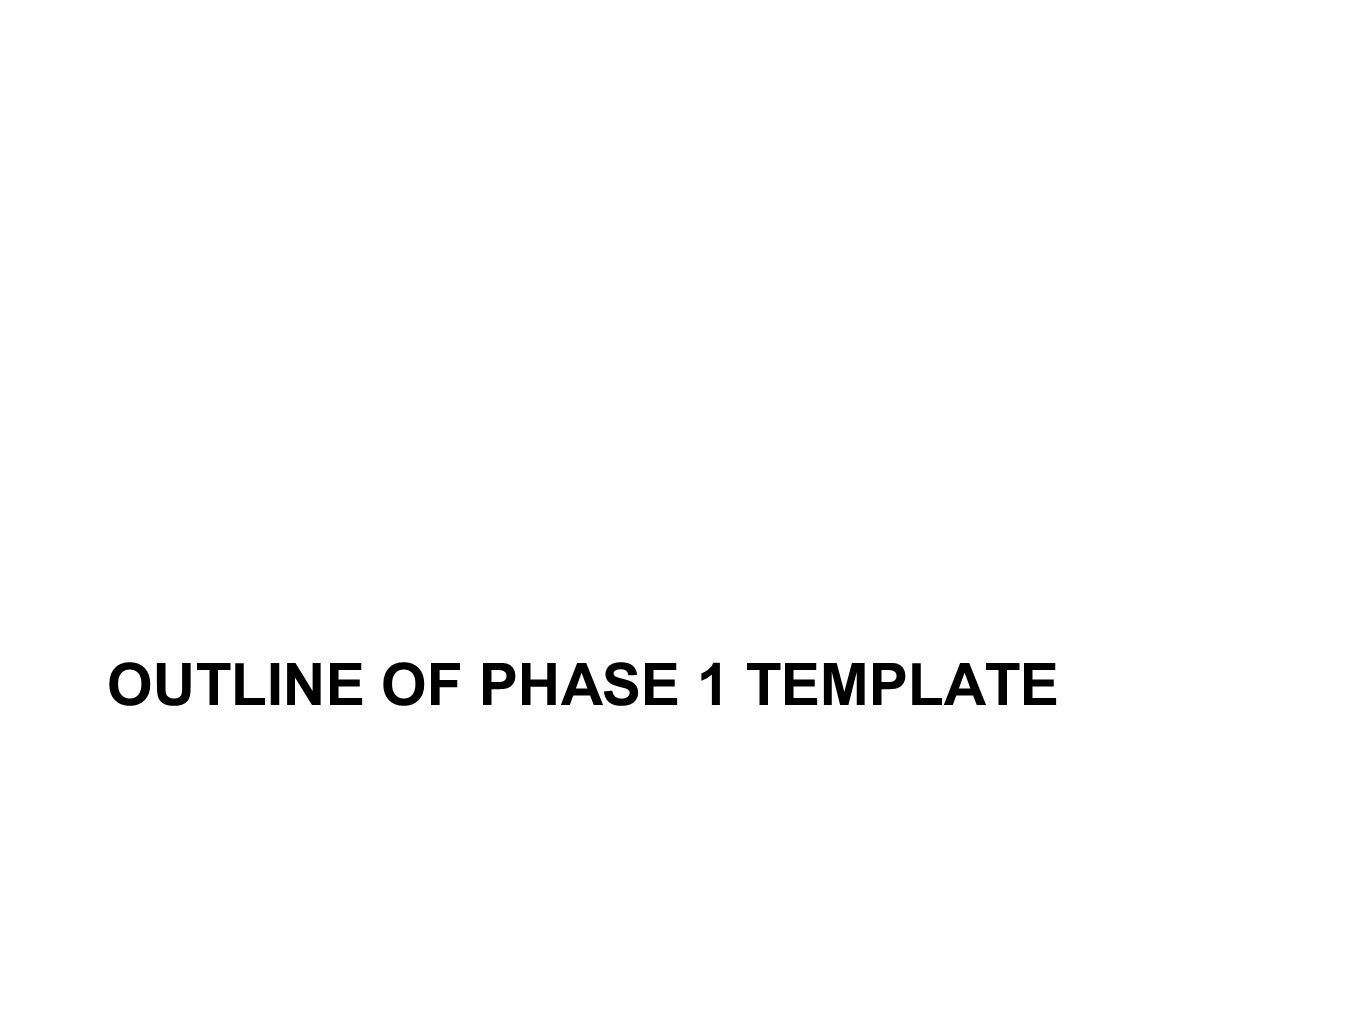 Outline of Phase 1 Template